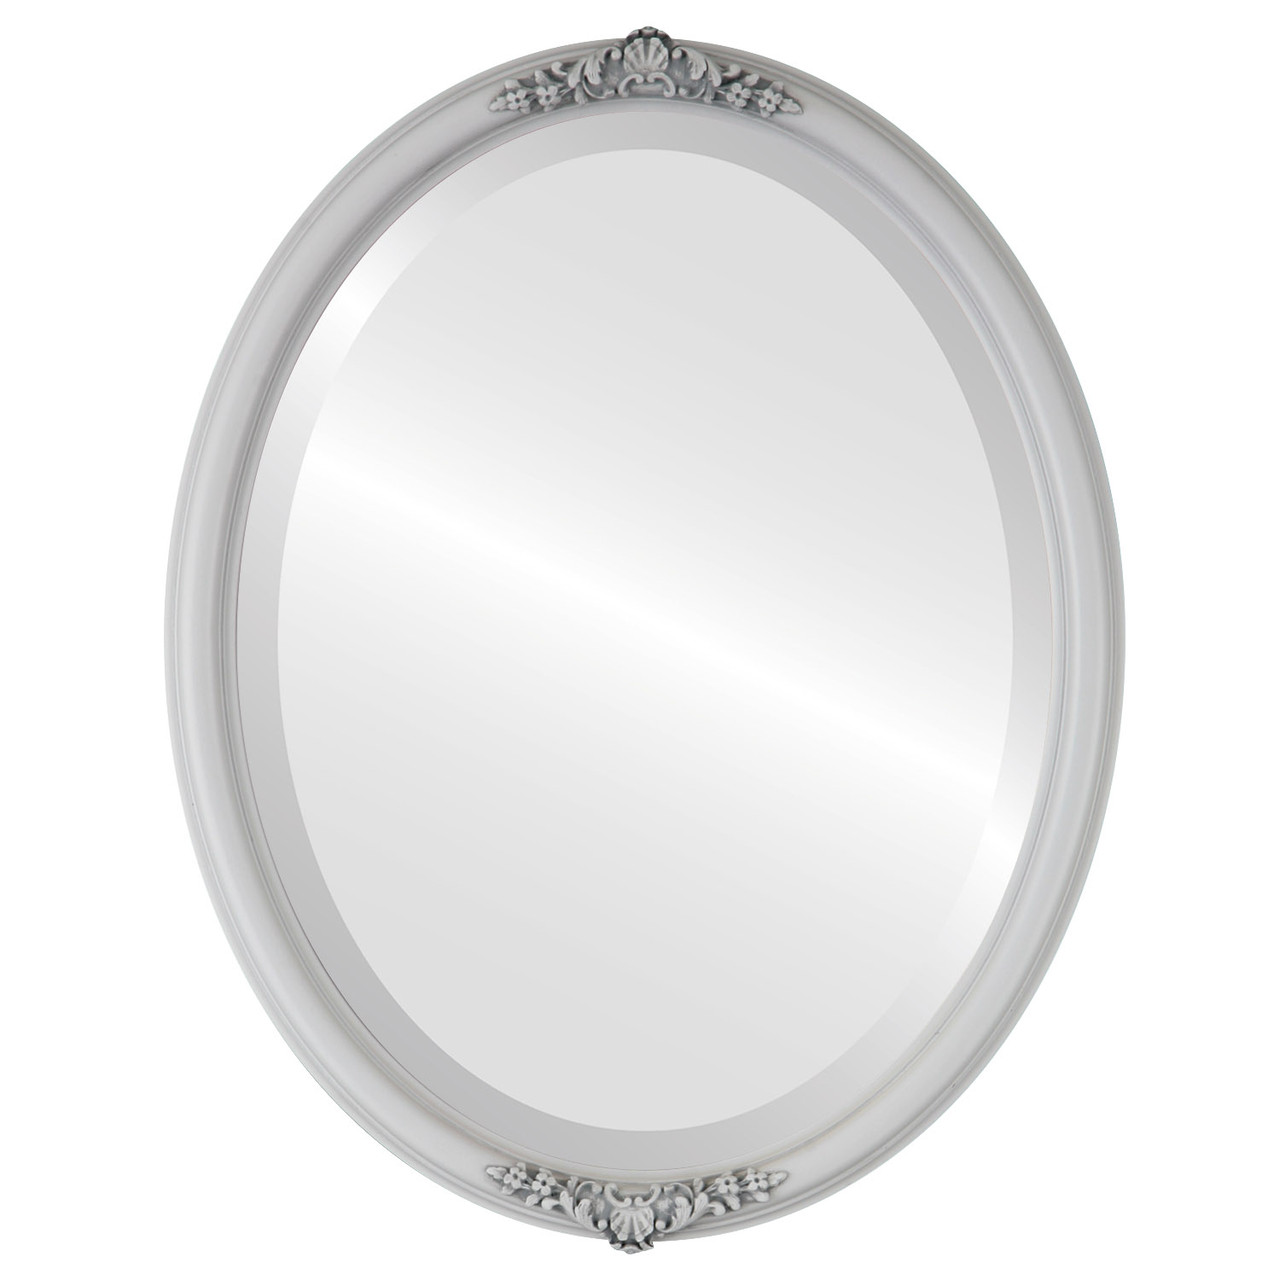 Vintage White Oval Mirrors from $126 | Free Shipping